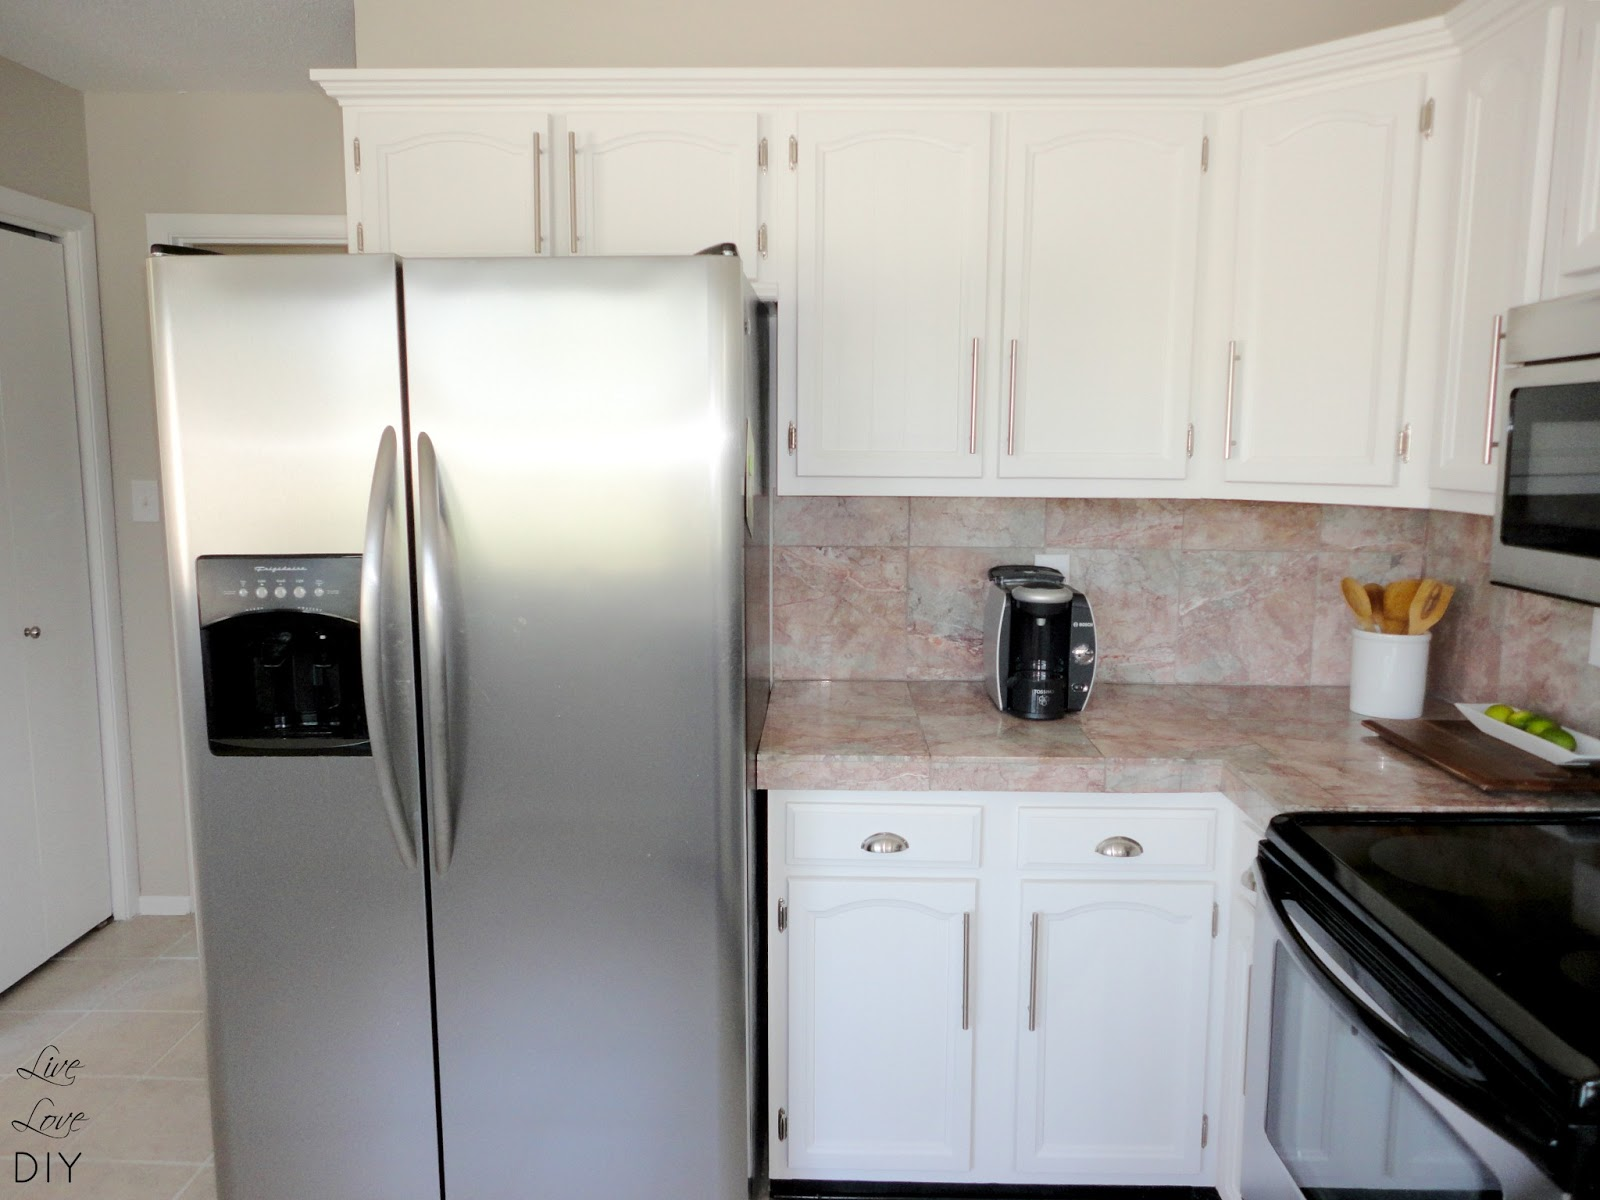 Paint Kitchen Cabinets White Premade Islands Livelovediy How To In 10 Easy Steps Your The Way An Tutorial Anyone Can